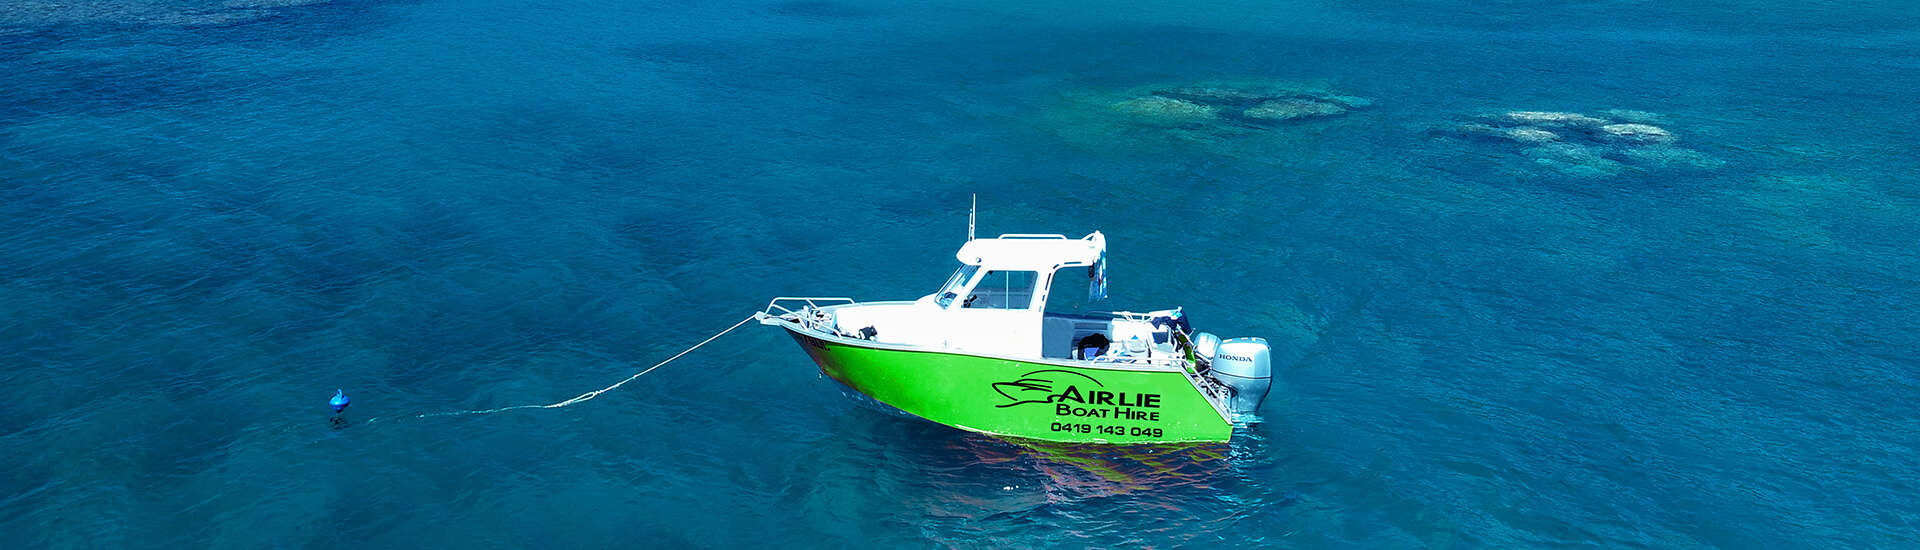 Commercial-boat-hire-whitsundays-airlie-beach